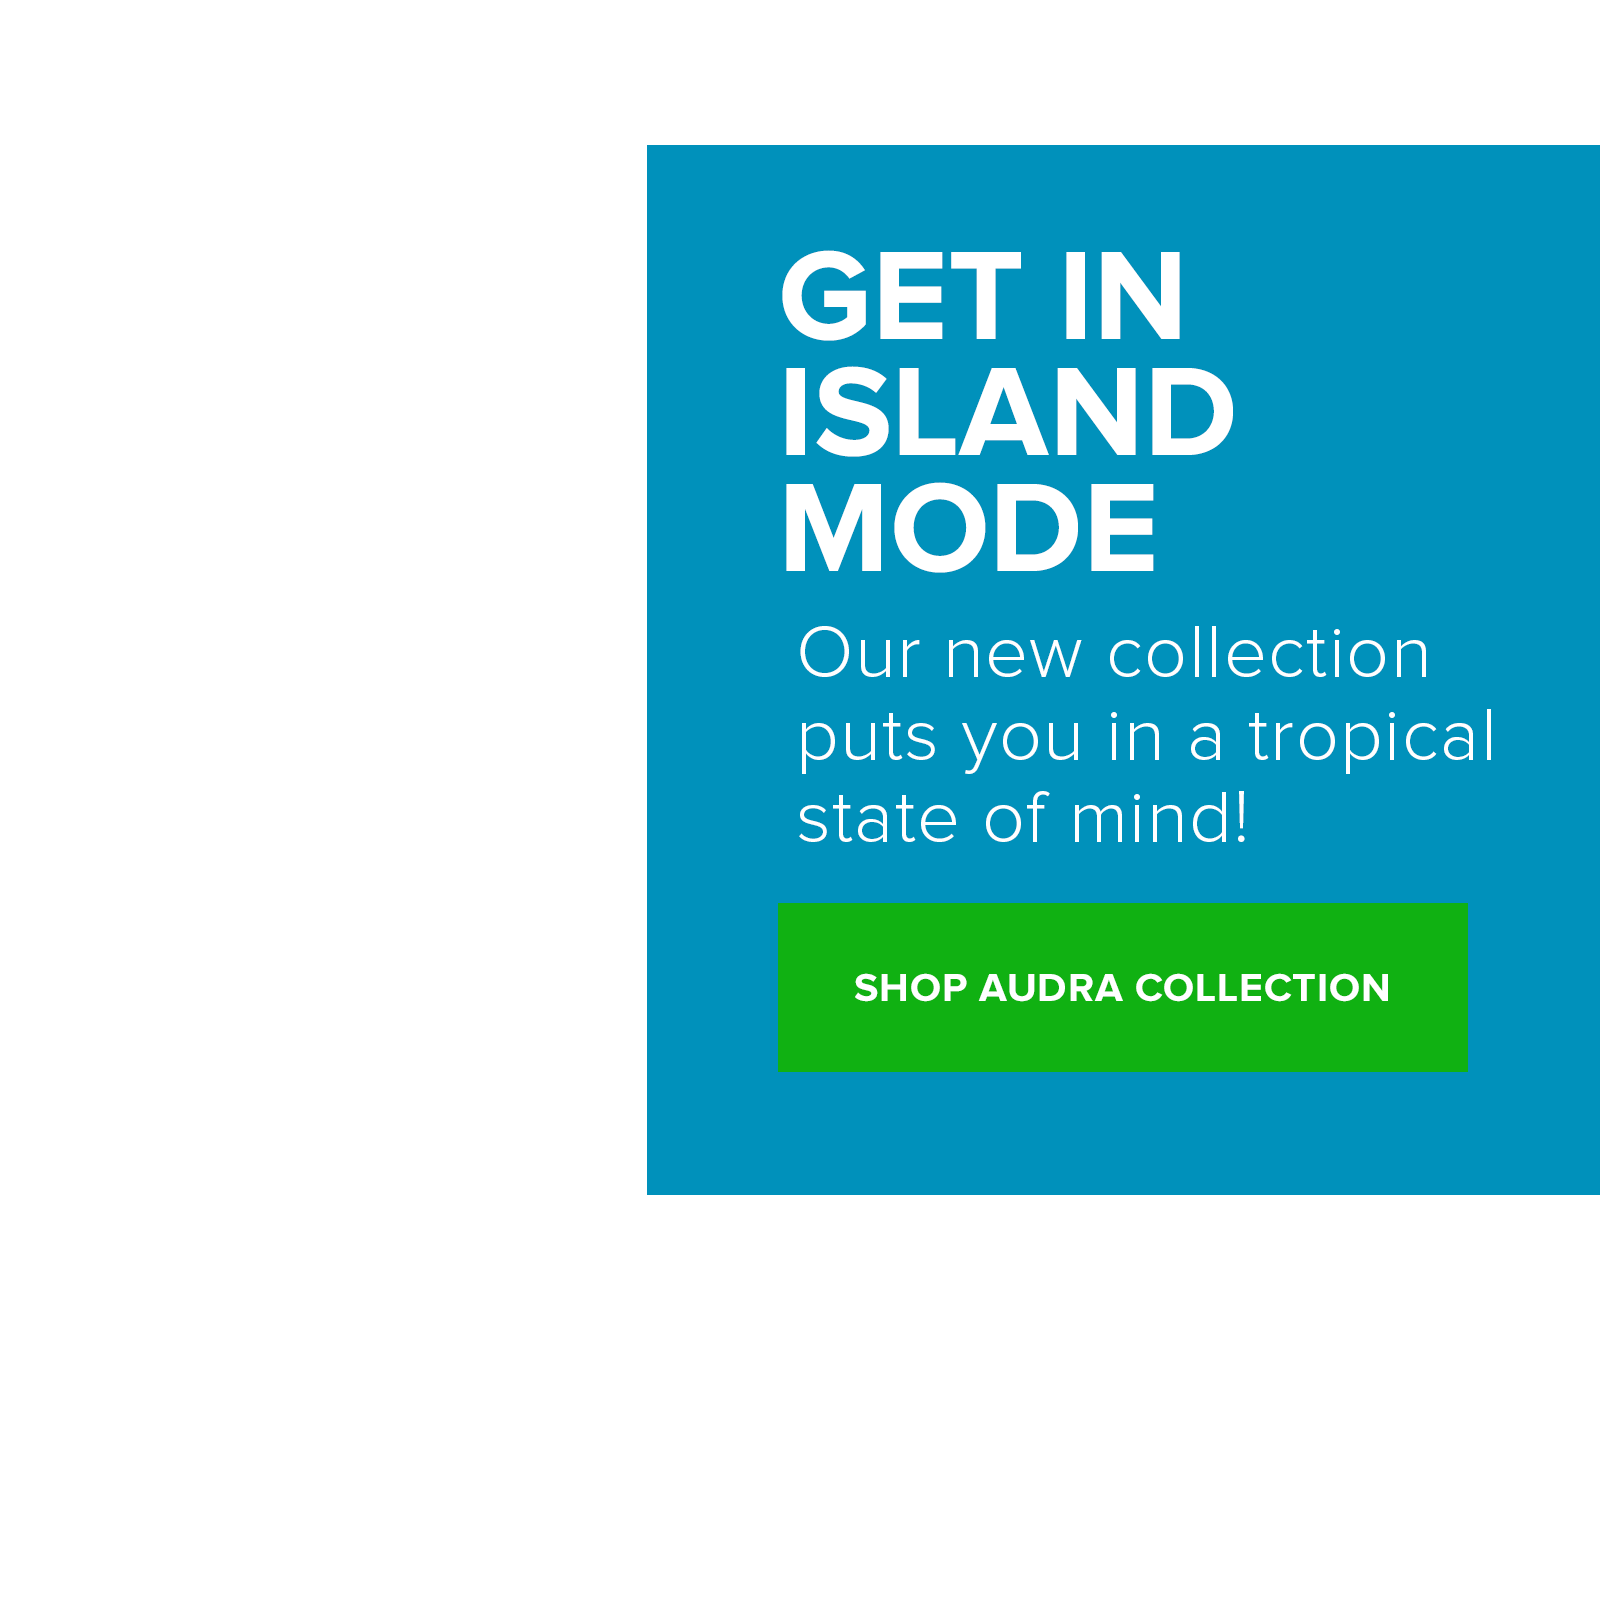 Shop the new apparel Audra Collection